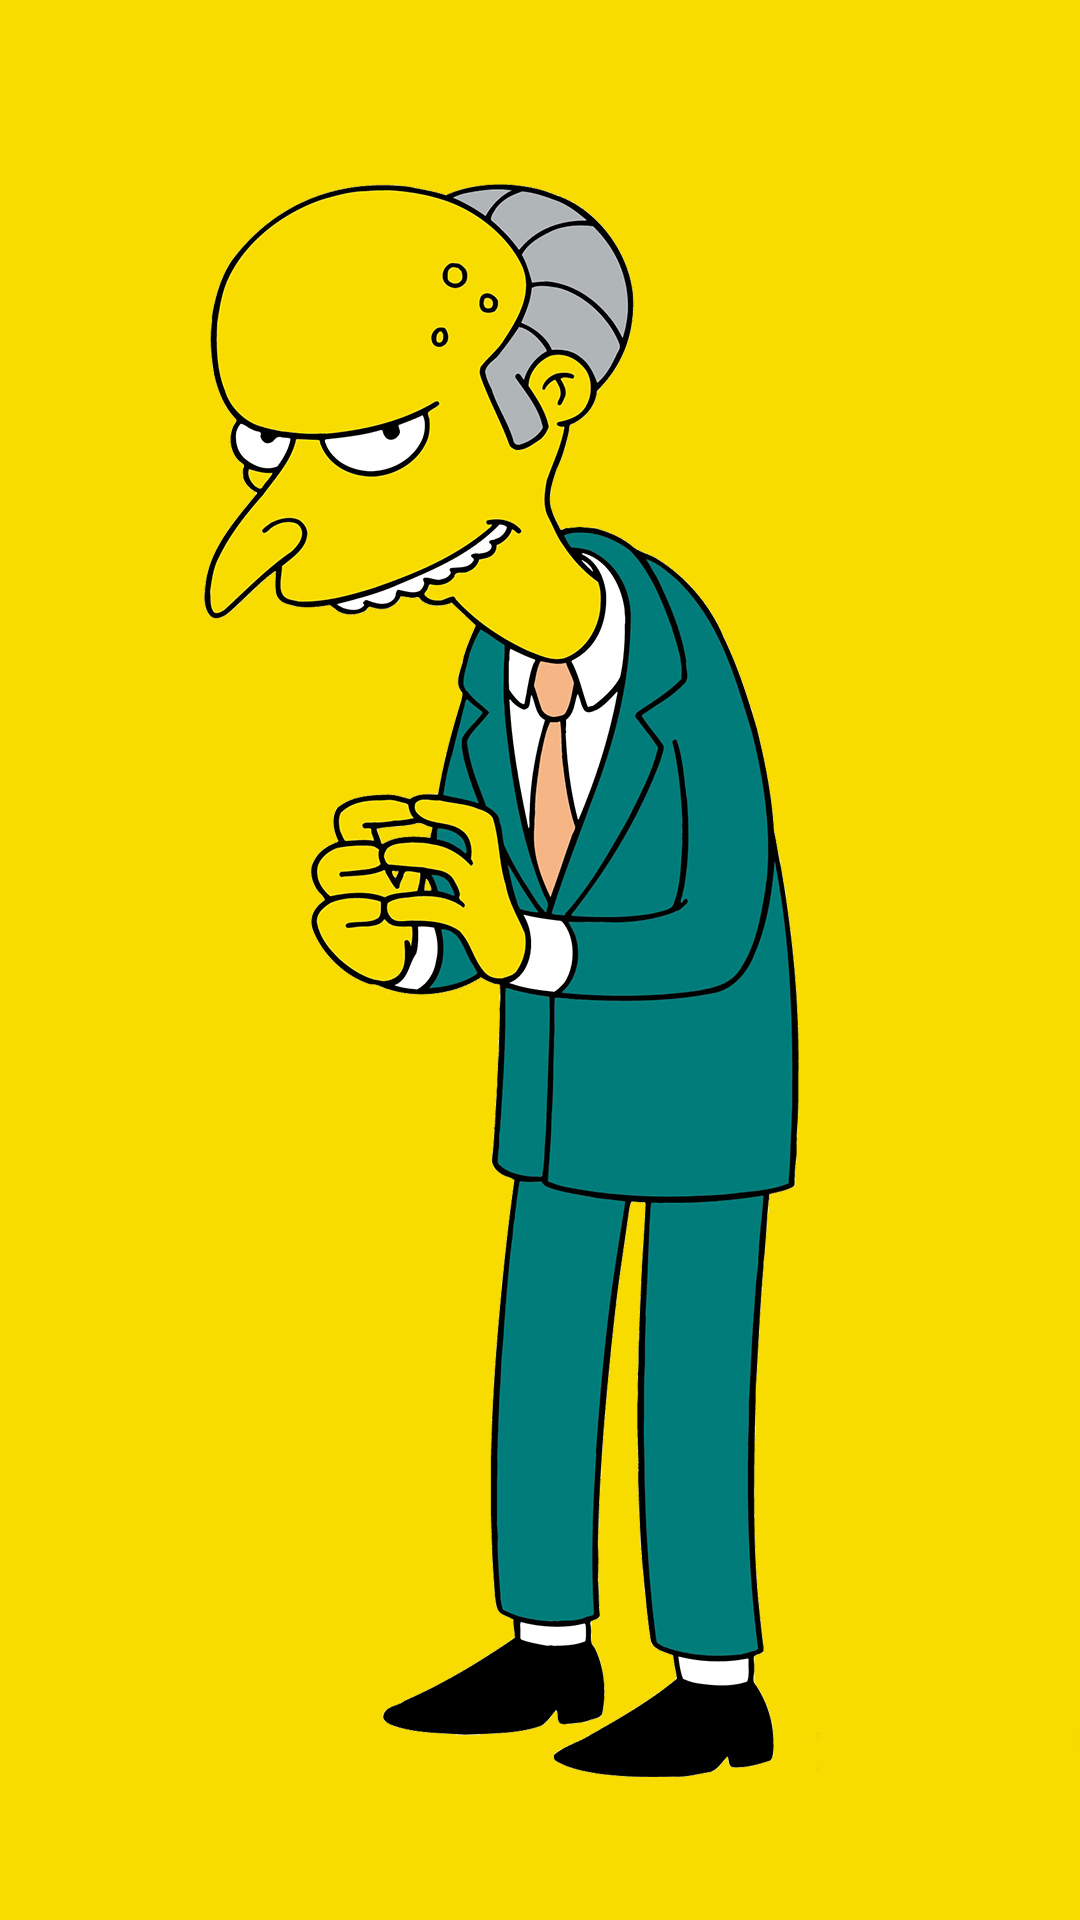 The Simpsons Iphone Wallpaper Mr Burns Hd Wallpaper For Your Mobile Phone